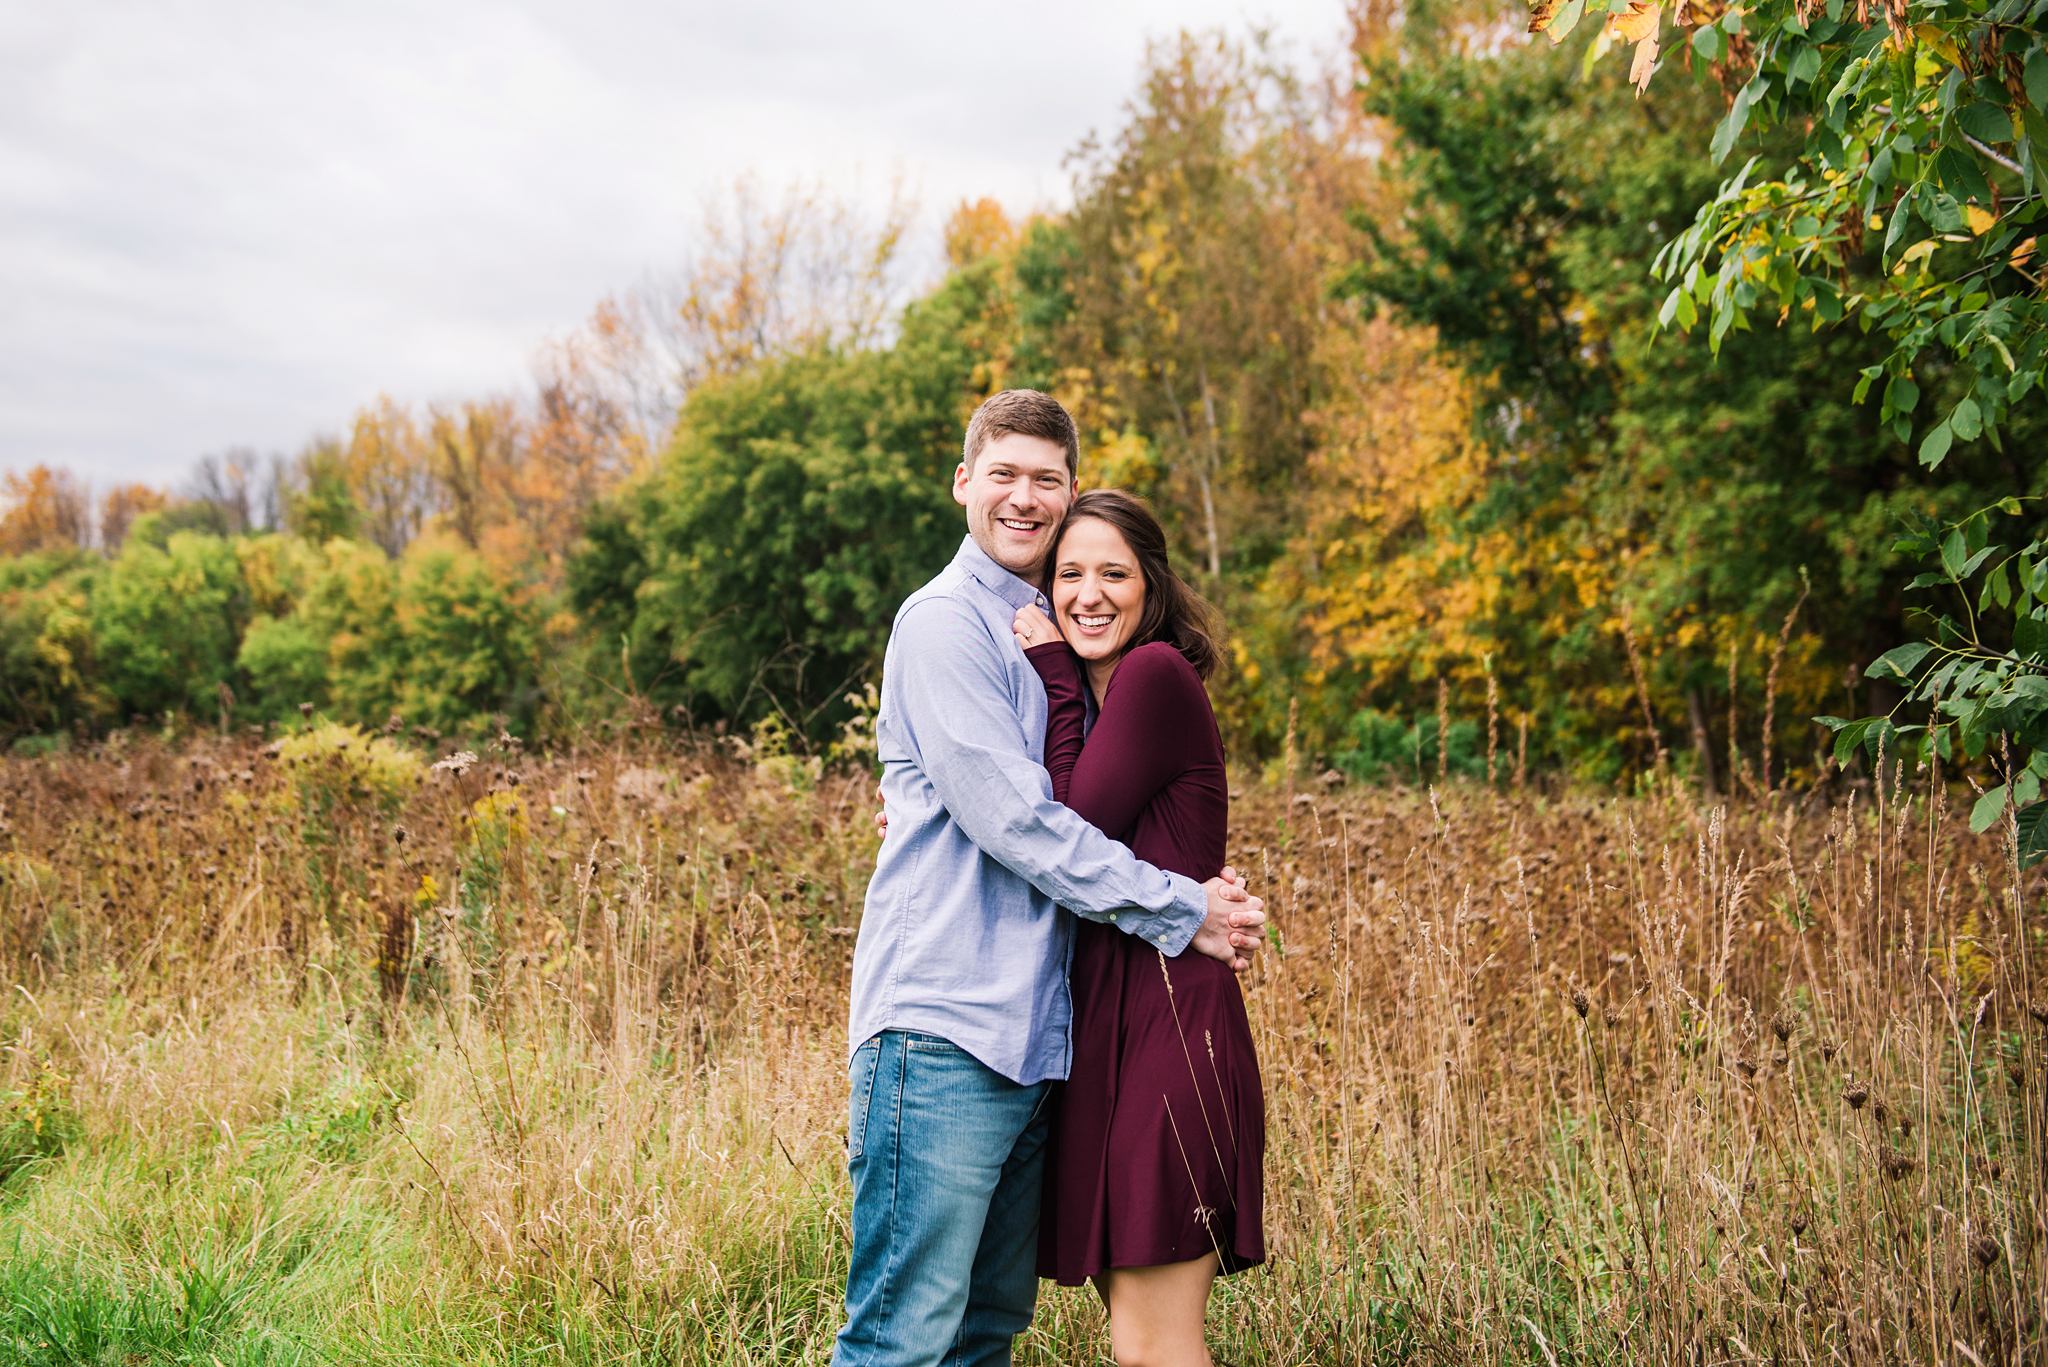 Hurd_Orchards_Rochester_Engagement_Session_JILL_STUDIO_Rochester_NY_Photographer_DSC_2064.jpg